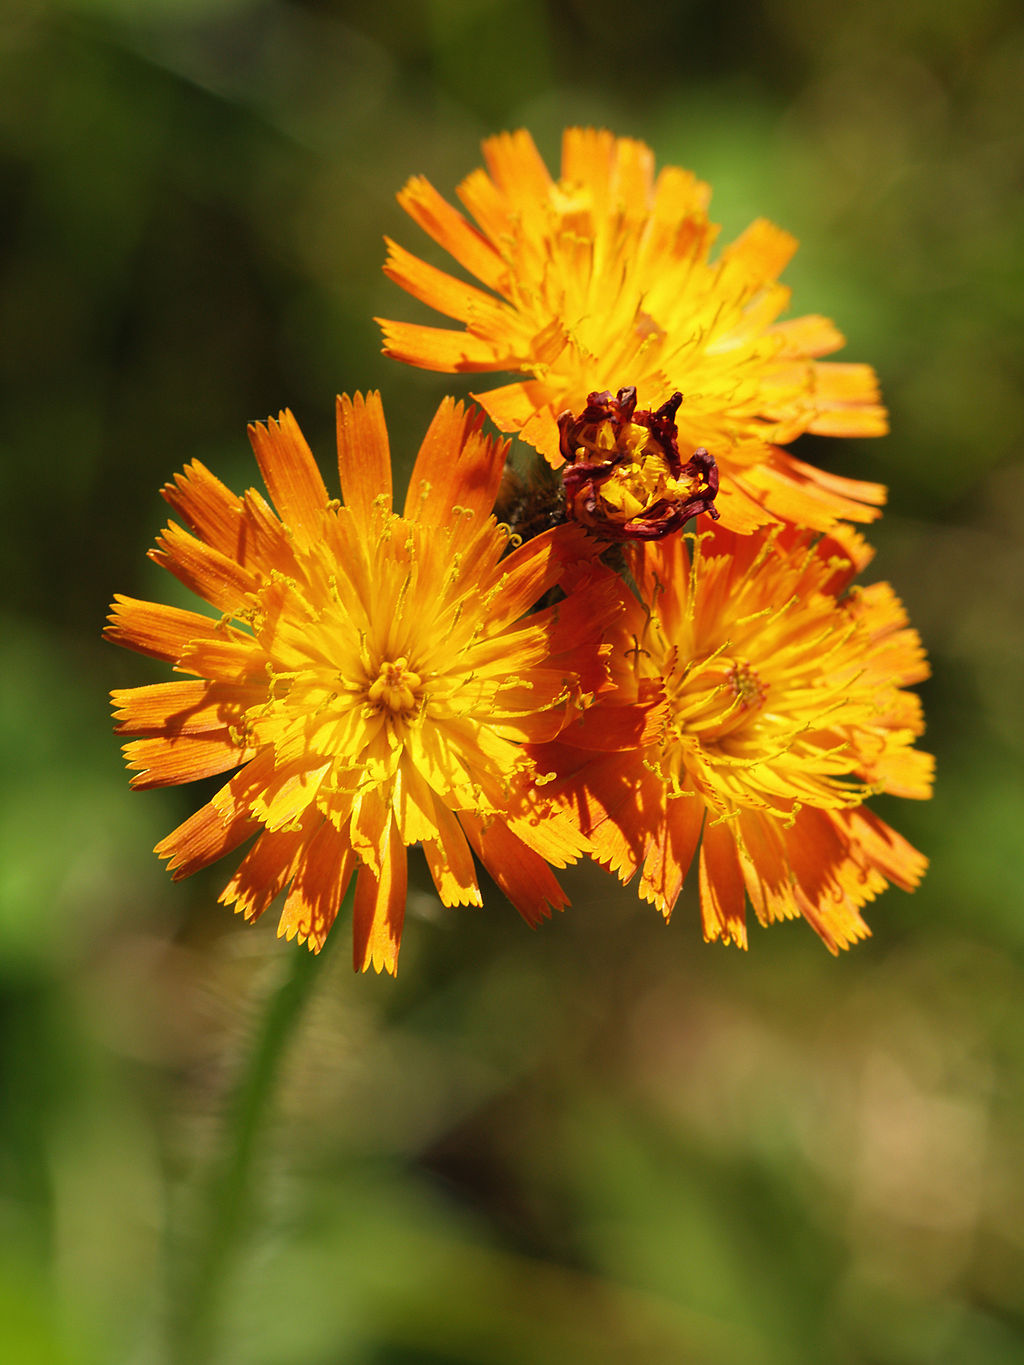 https://commons.wikimedia.org/wiki/File%3AHieracium_aurantiacum_LC0106.jpg